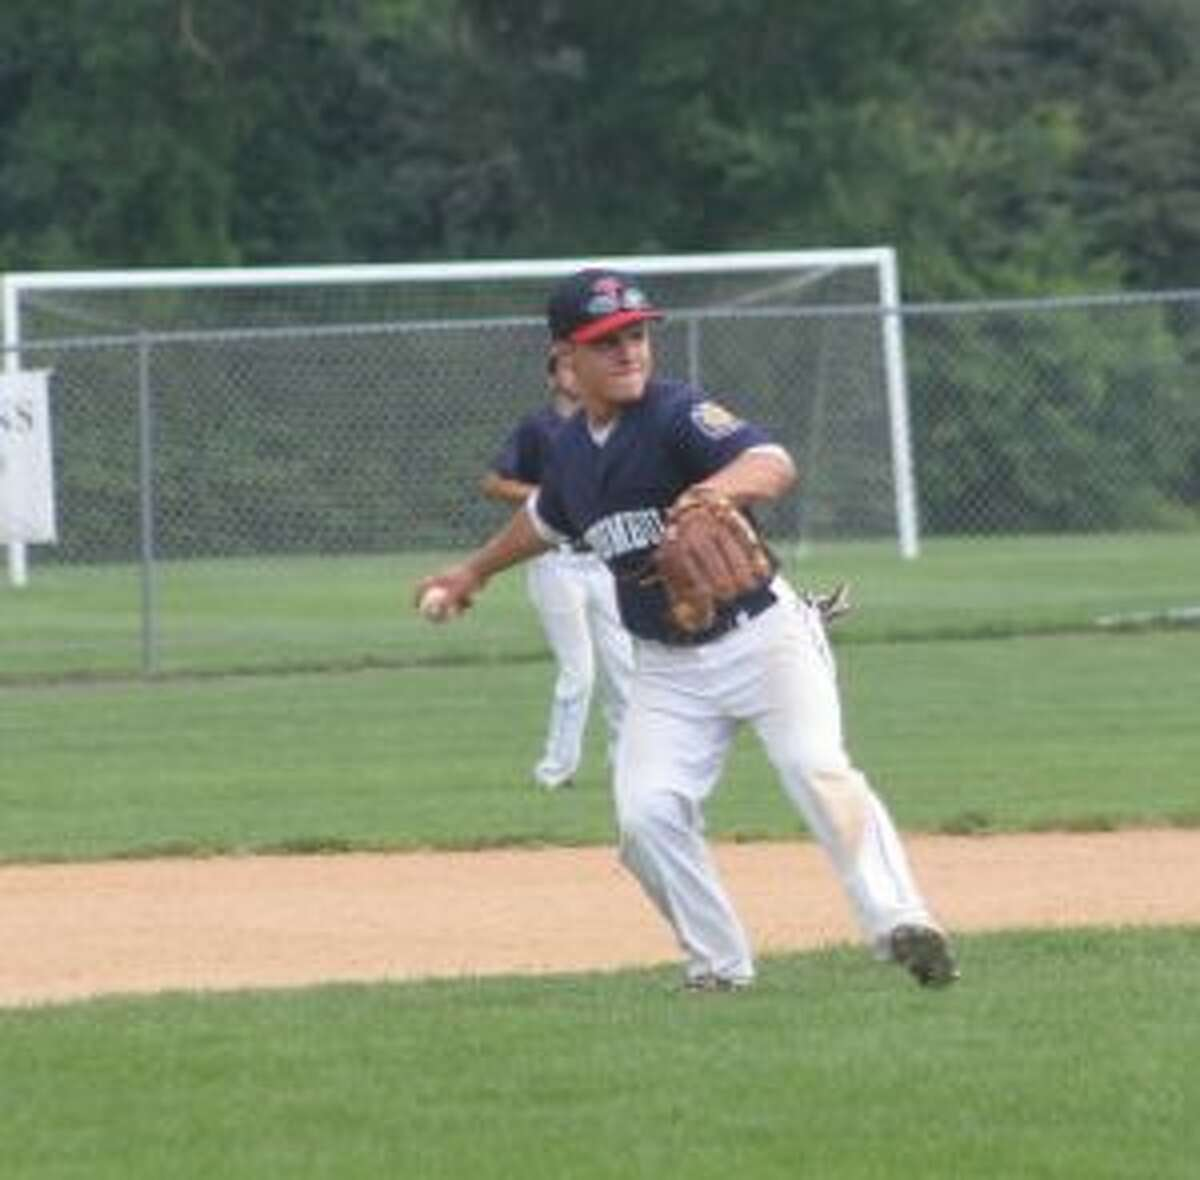 Mark Vozzella had a pair of assists from third base.